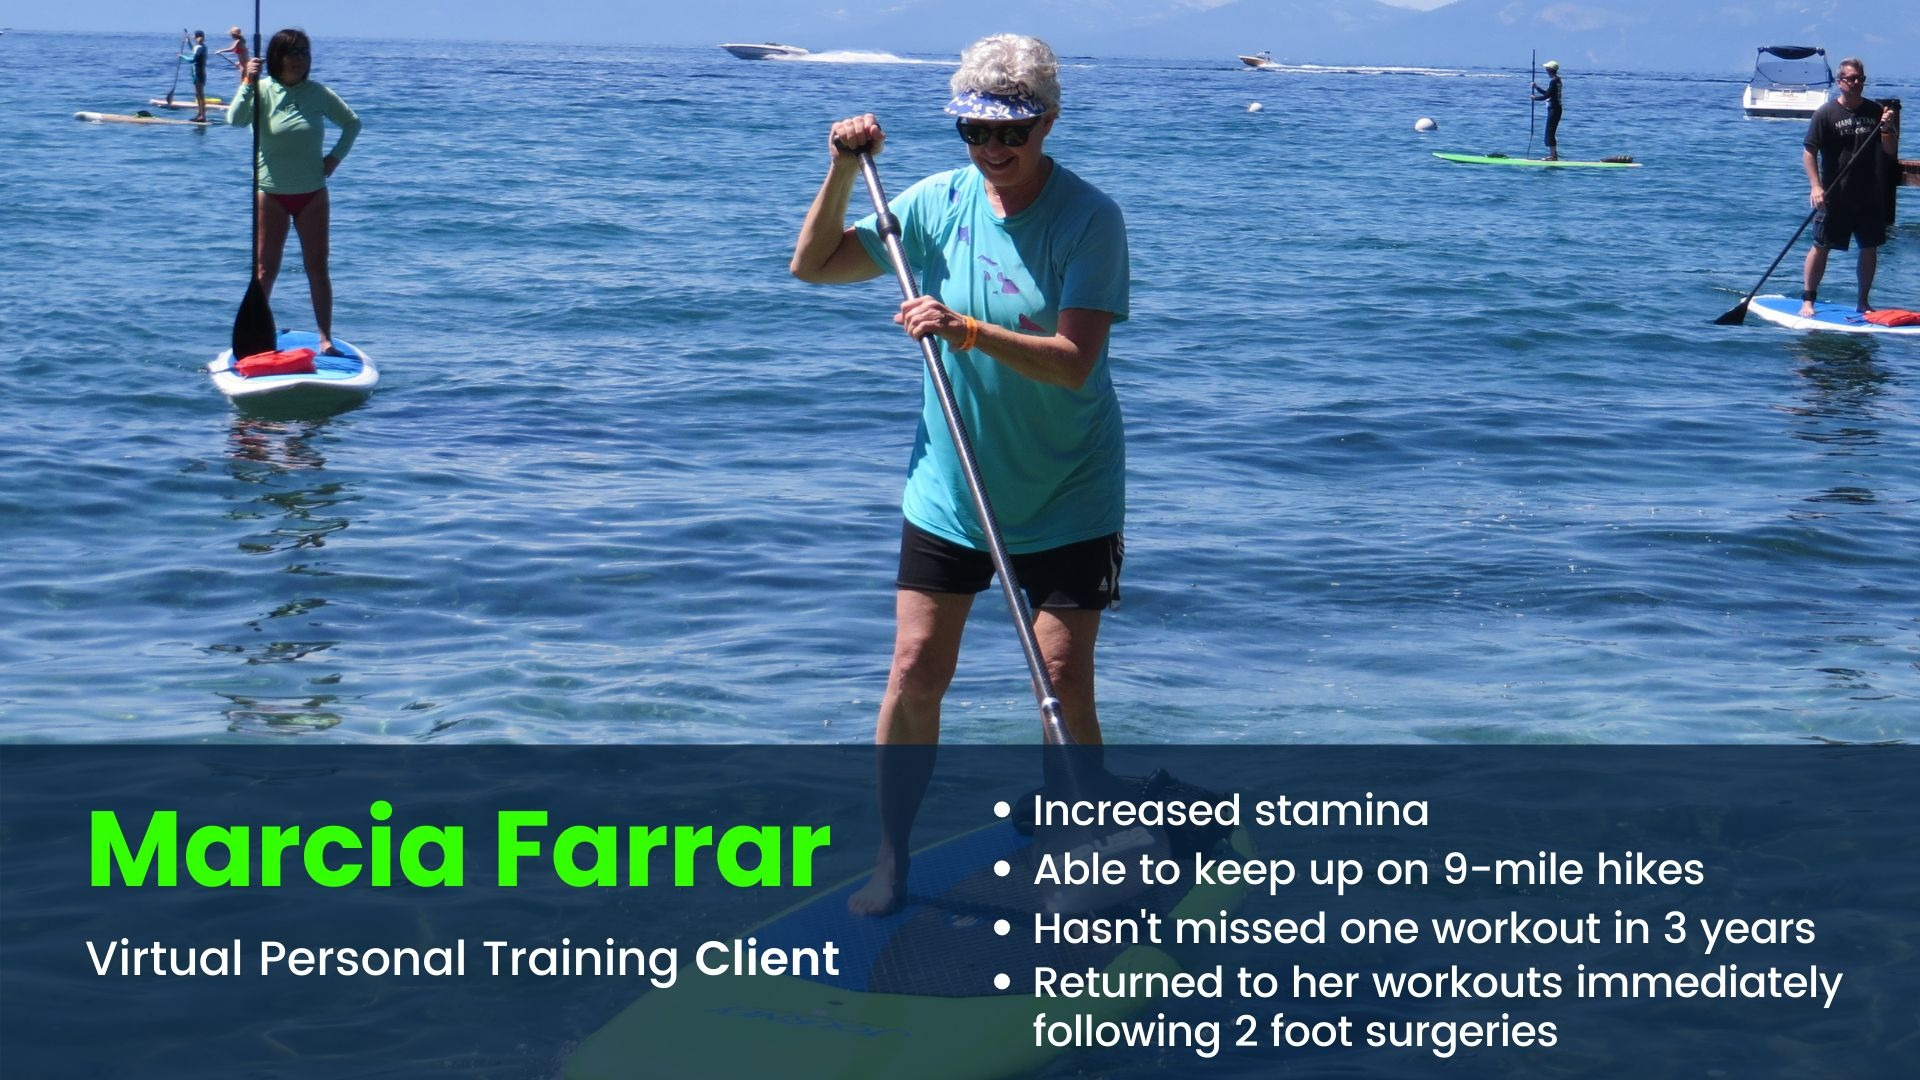 Virtual Personal training client increases stamina and enjoys stand up paddling